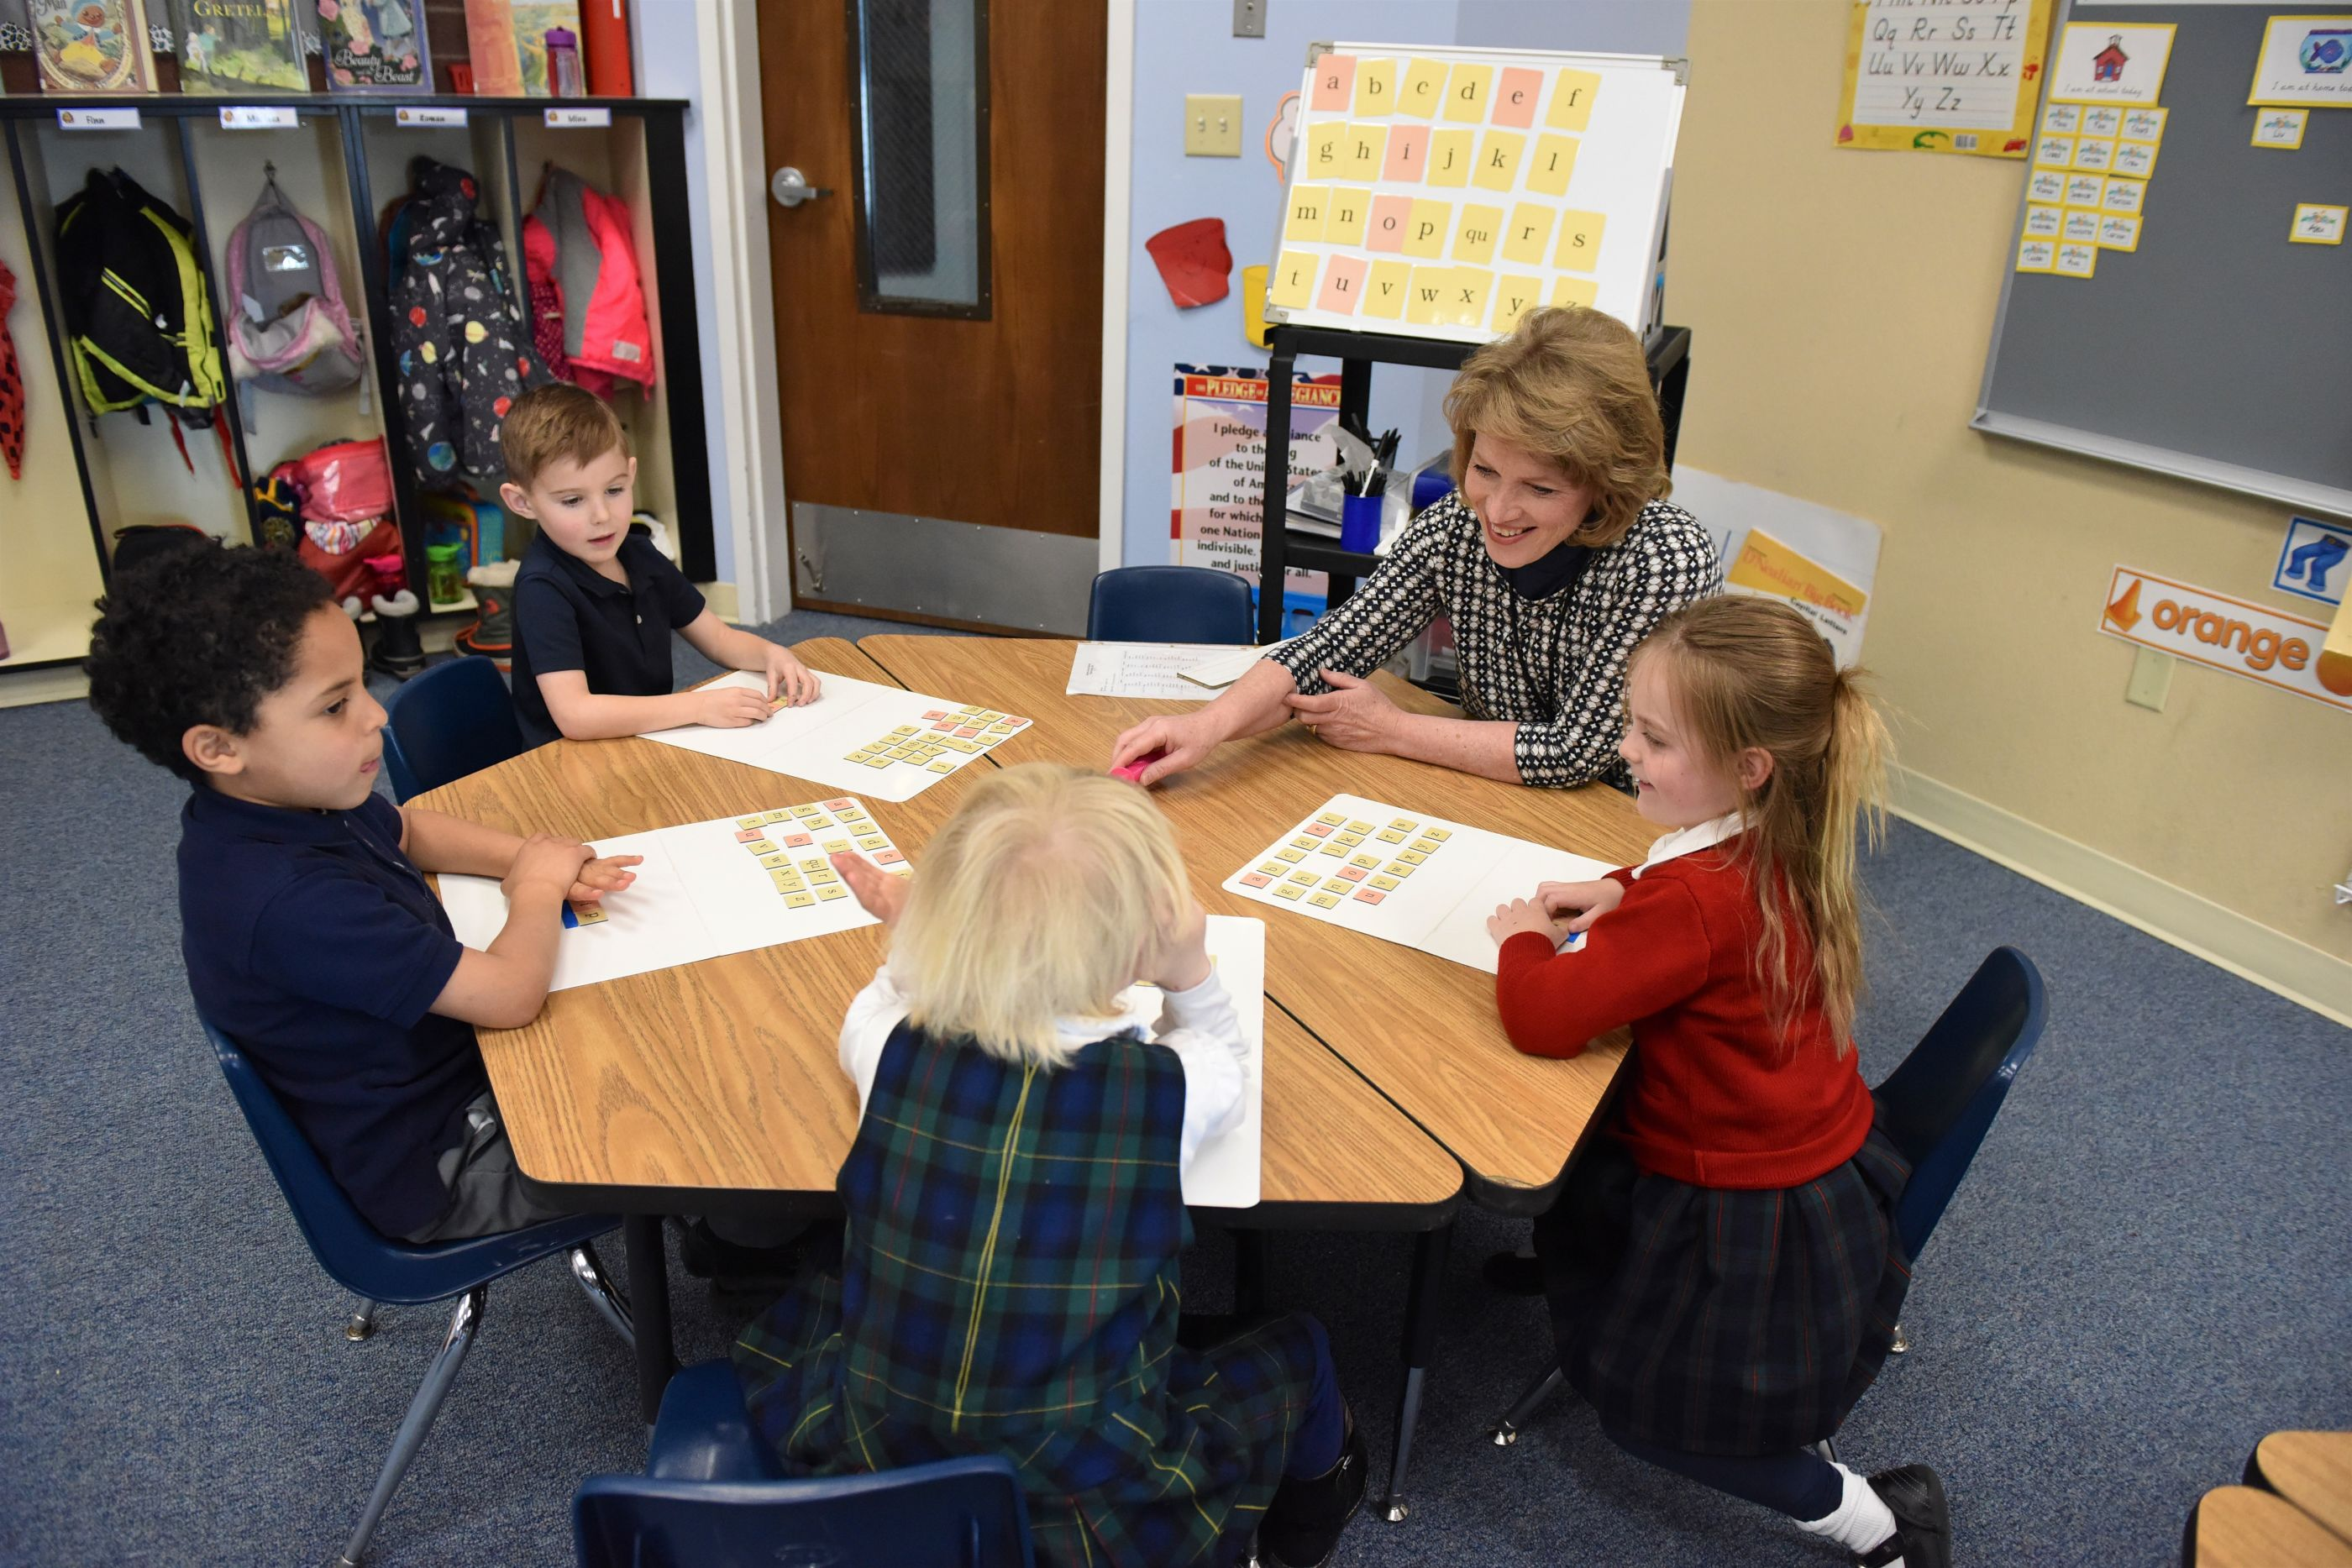 Students work in small groups